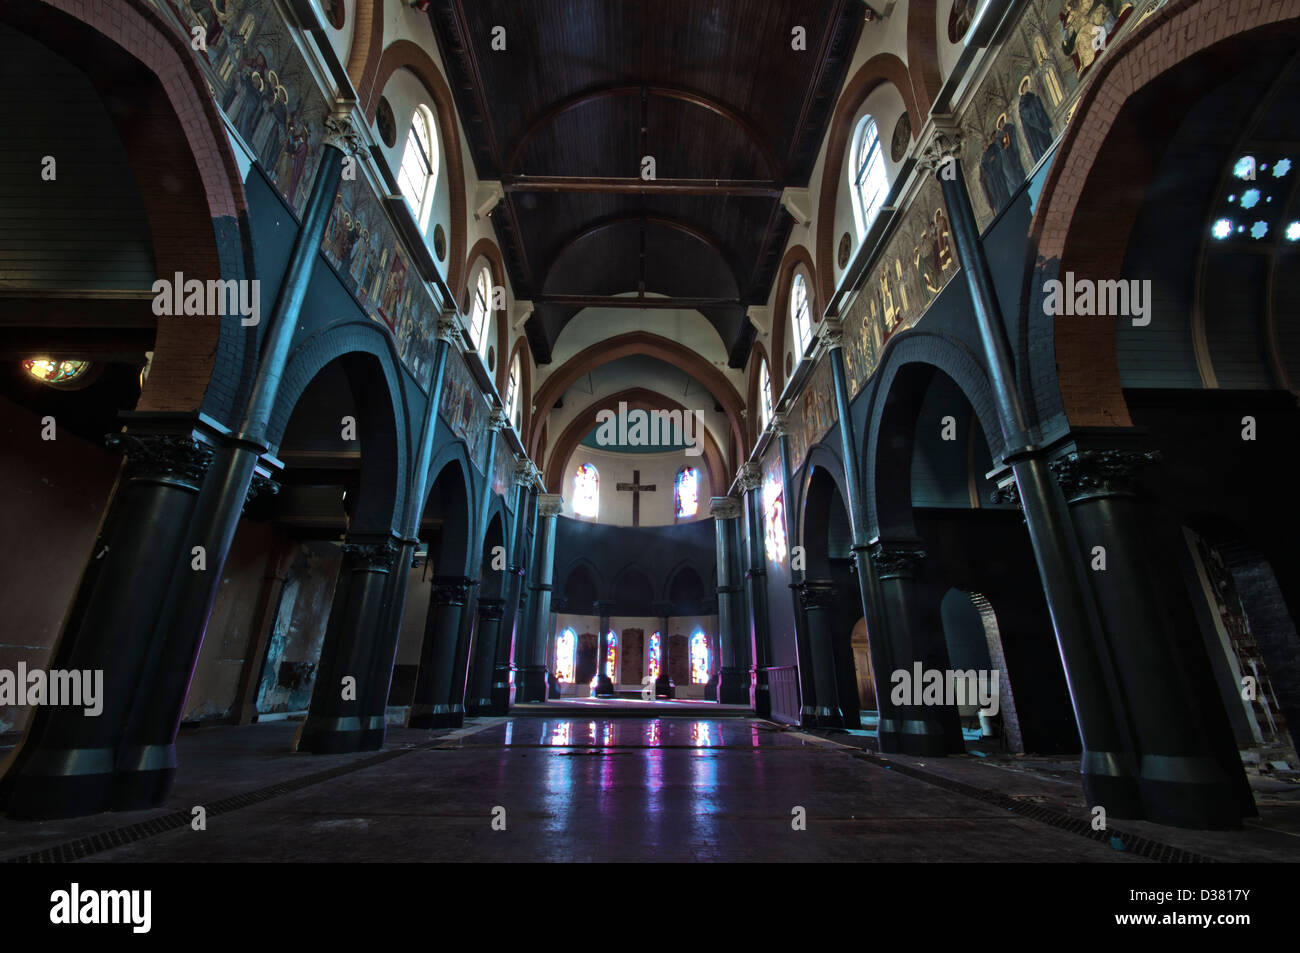 Catholic Seminary, soon to be redeveloped into modern luxury homes. - Stock Image